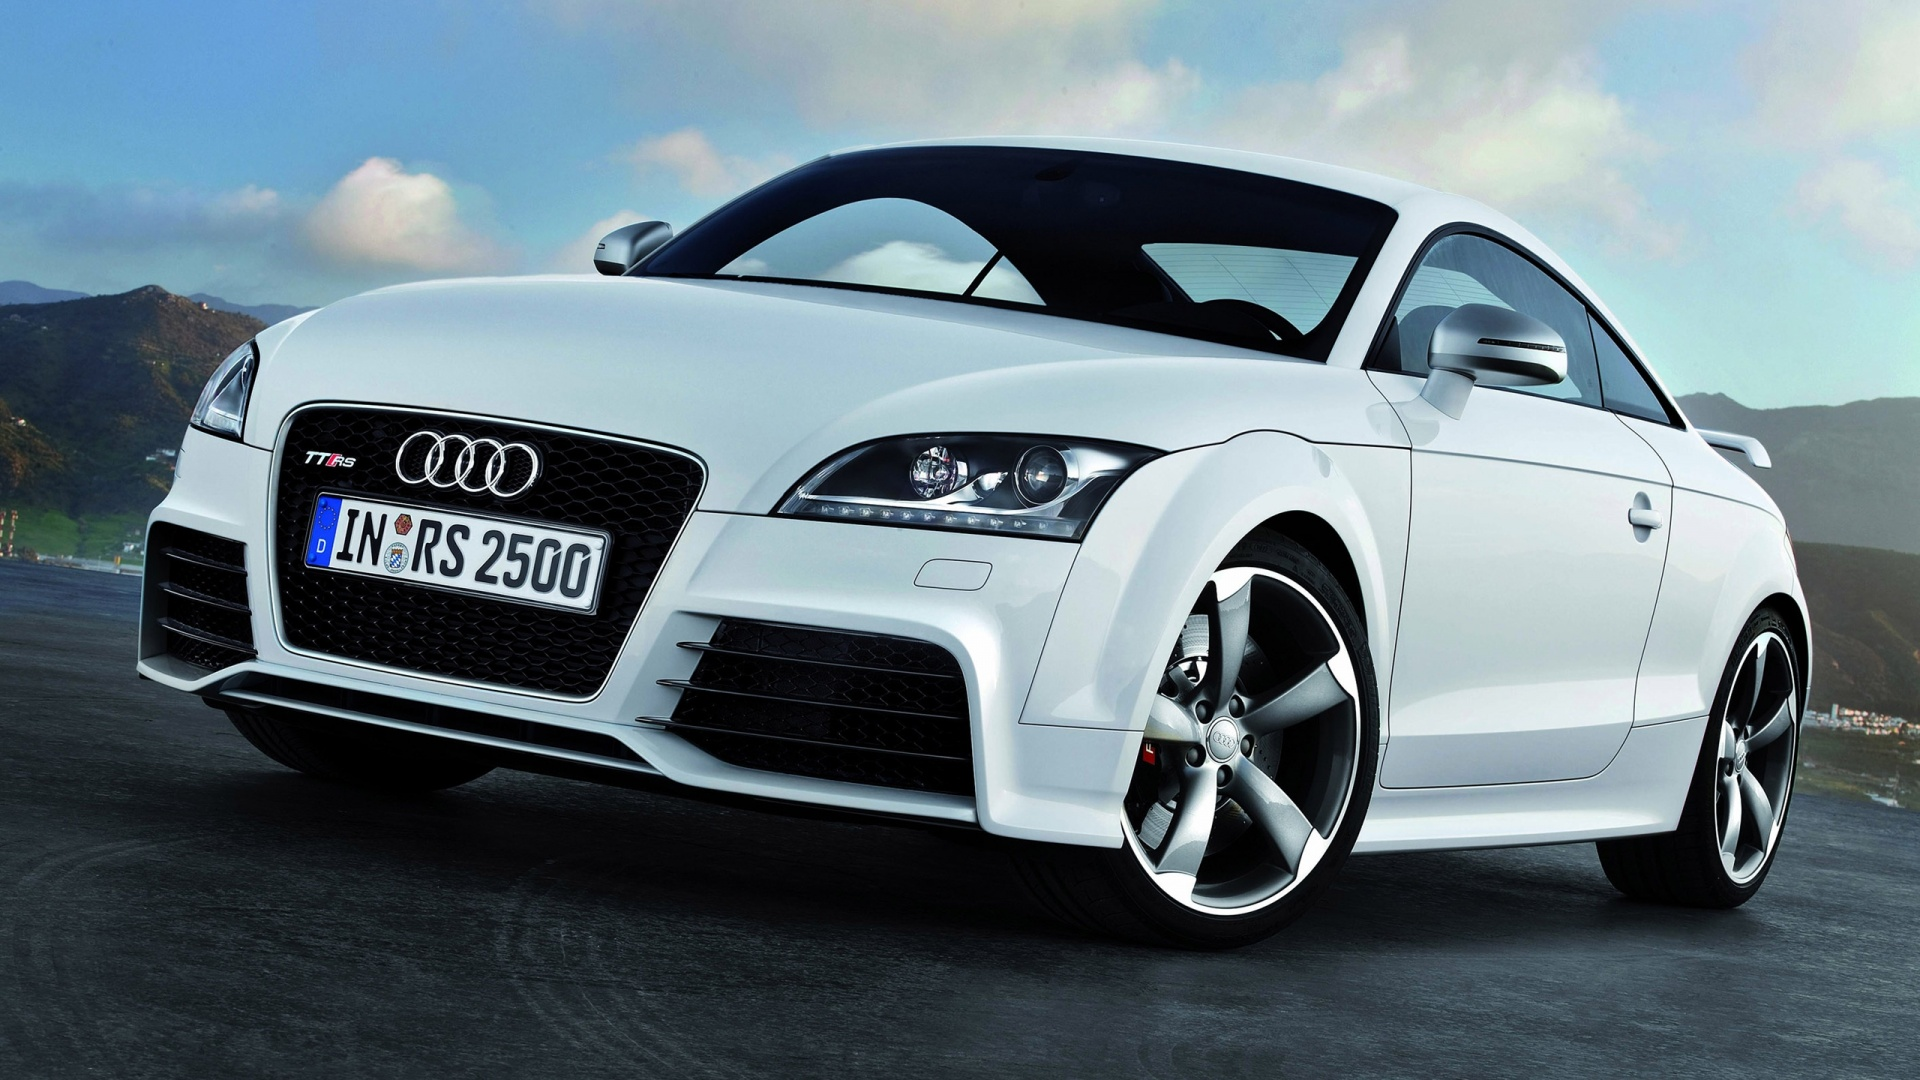 2012 audi tt rs high definition wallpapers hd wallpapers. Black Bedroom Furniture Sets. Home Design Ideas